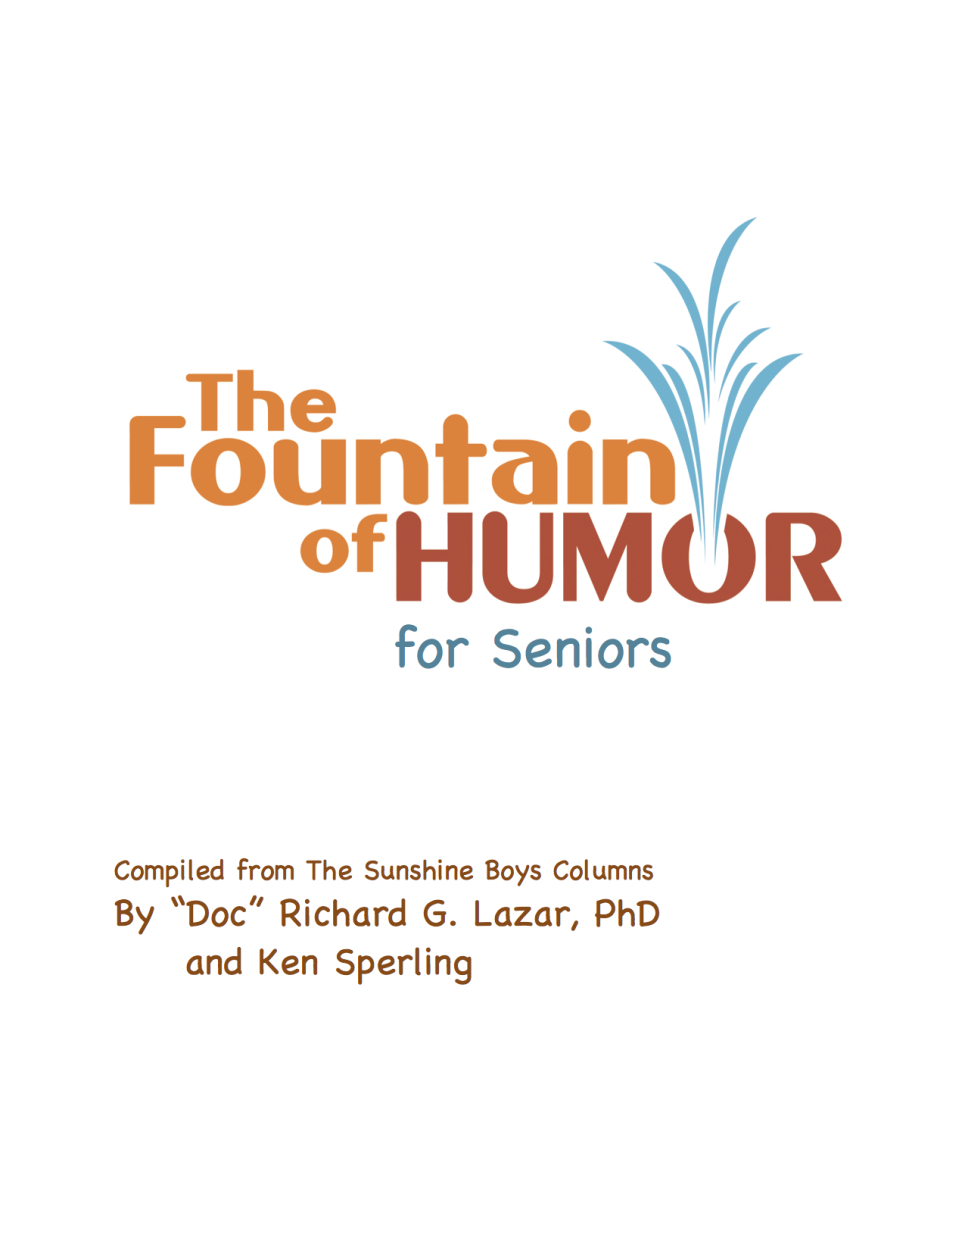 The Fountain of Humor for Seniors